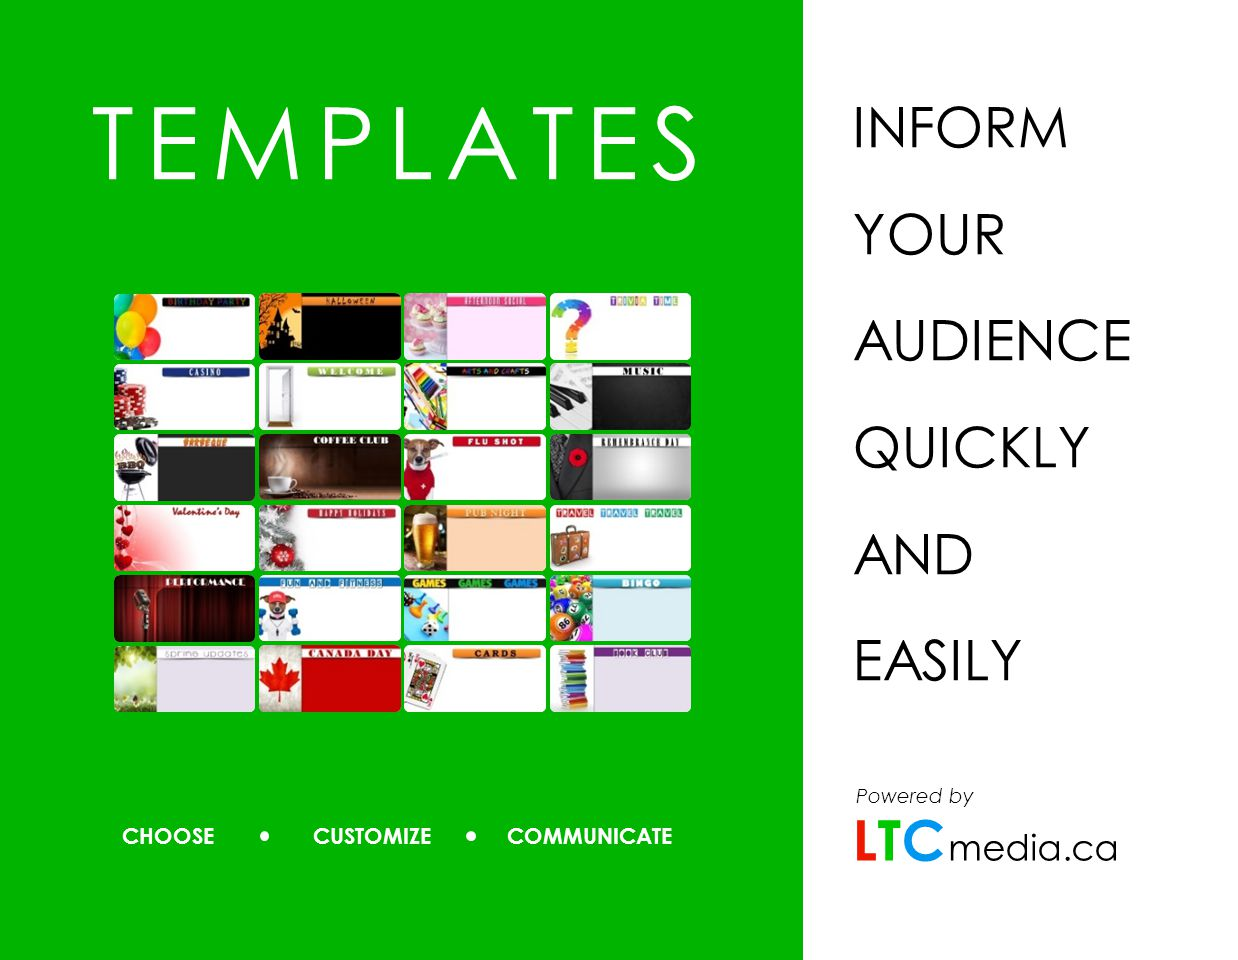 TEMPLATES INFORM YOUR AUDIENCE QUICKLY AND EASILY CHOOSE CUSTOMIZECOMMUNICATE media.ca Powered by LTCLTC